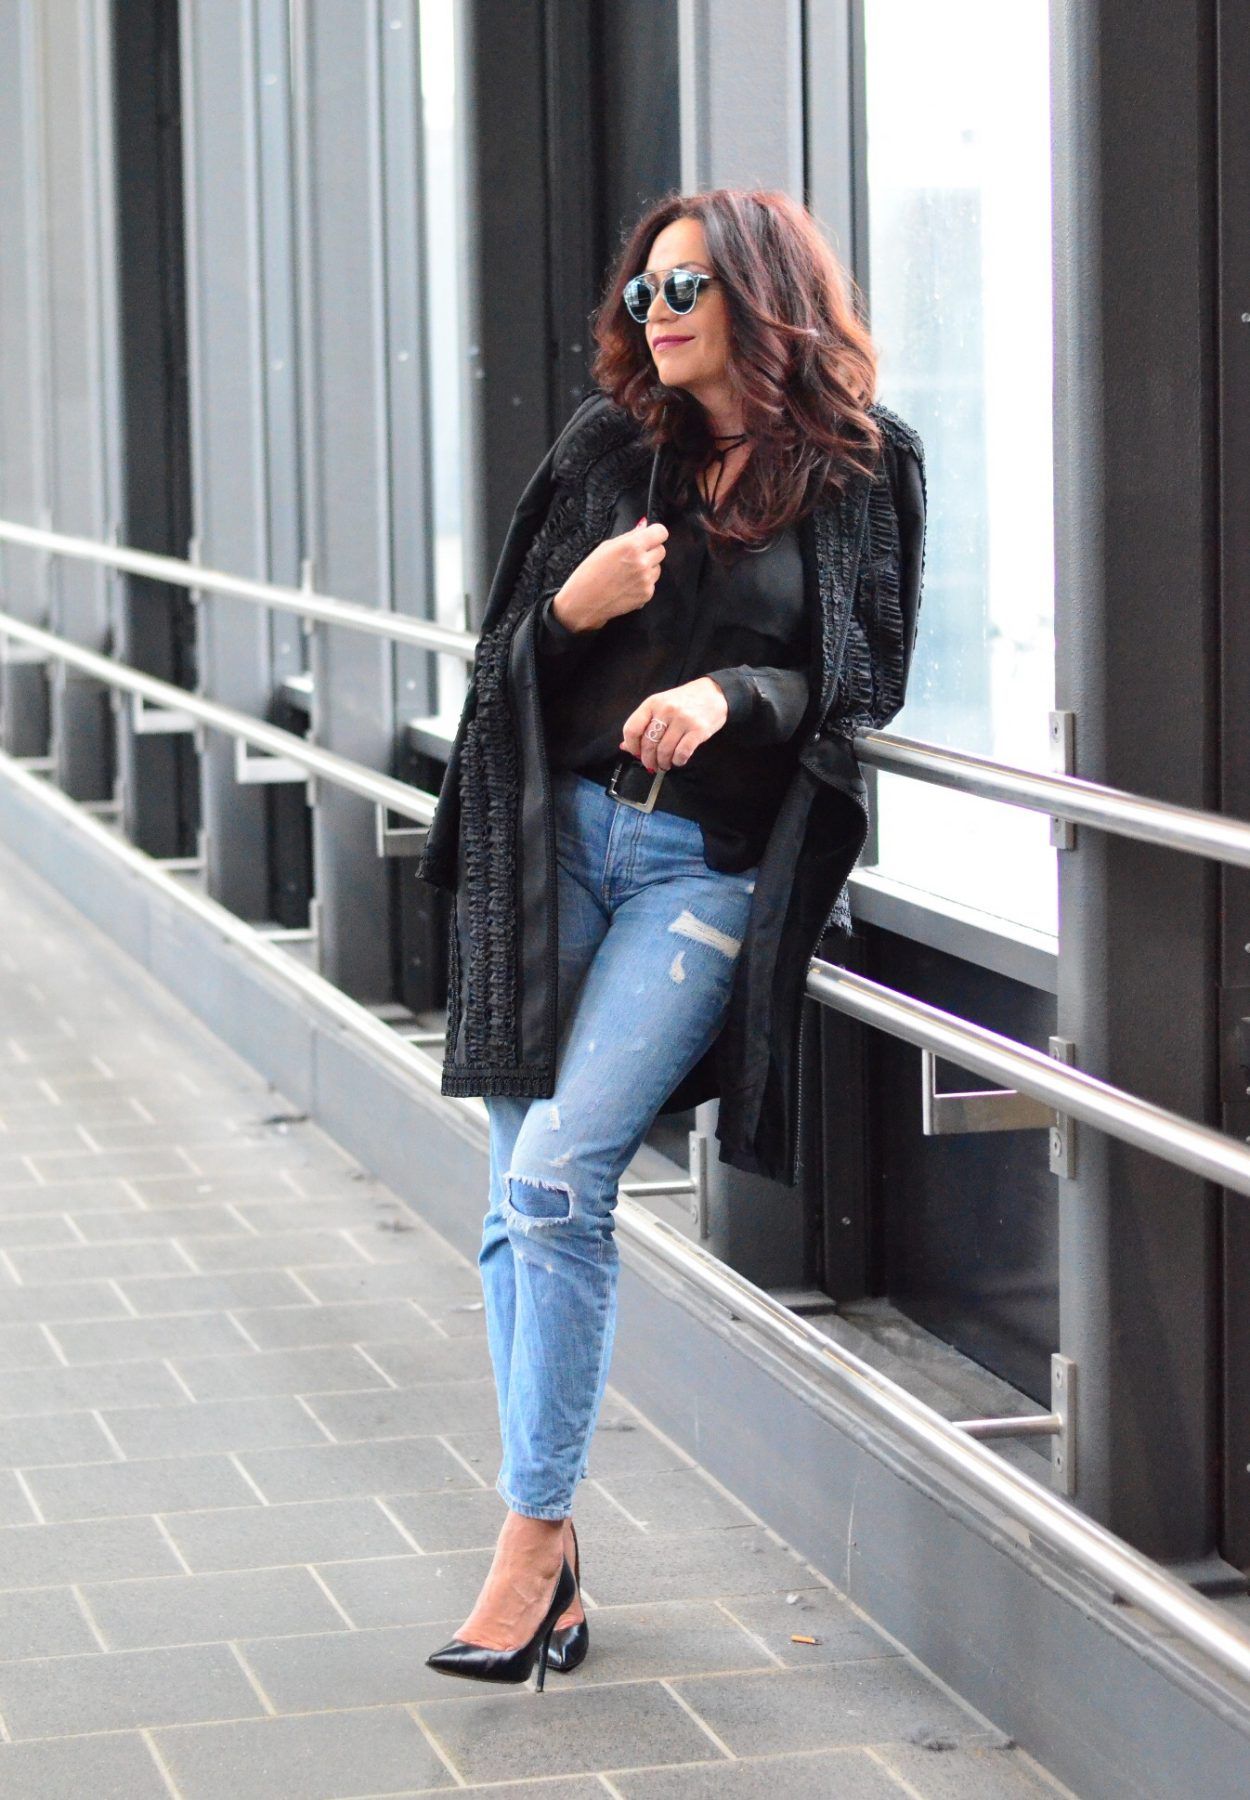 Jeans Mango. Shades: Dior. Eyewear fashion. Dolce & Gabbana. Shoes: Buffalo. Fashion, Style, ageless.